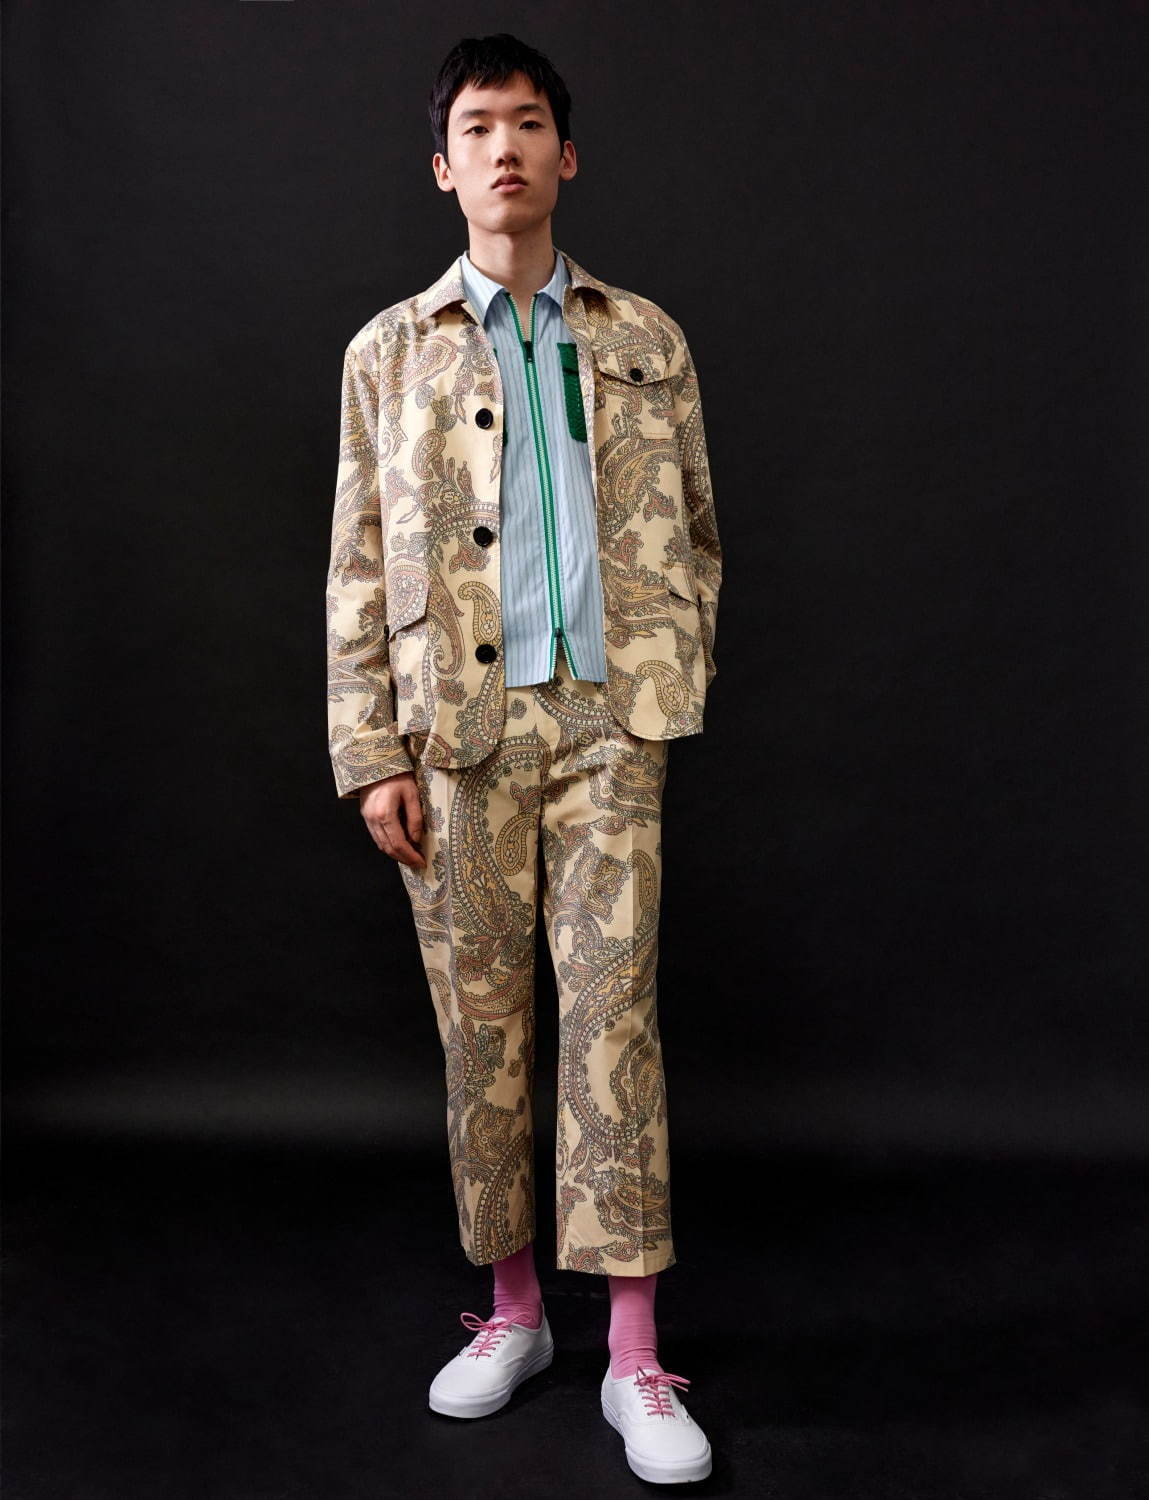 Viktor & Rolf Spring-Summer 2021 Collection